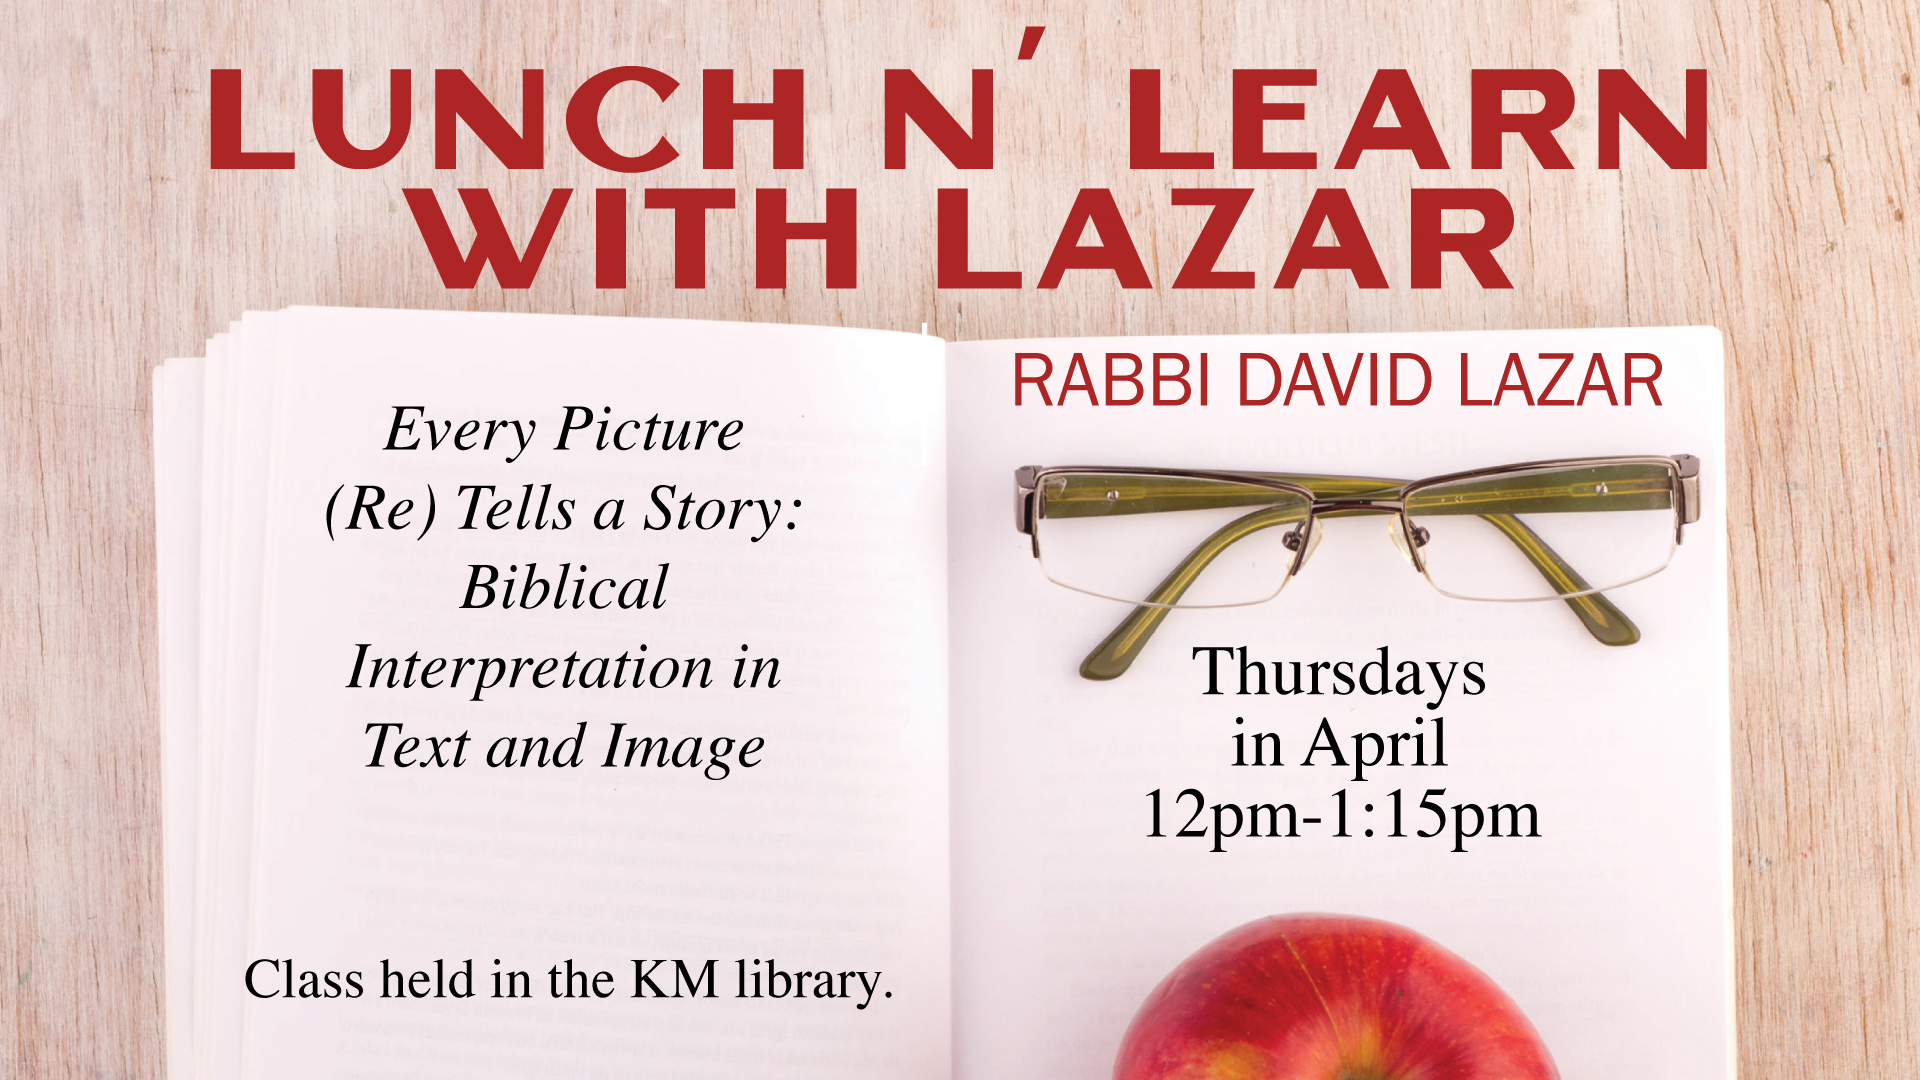 Lunch n' Learn with Lazar